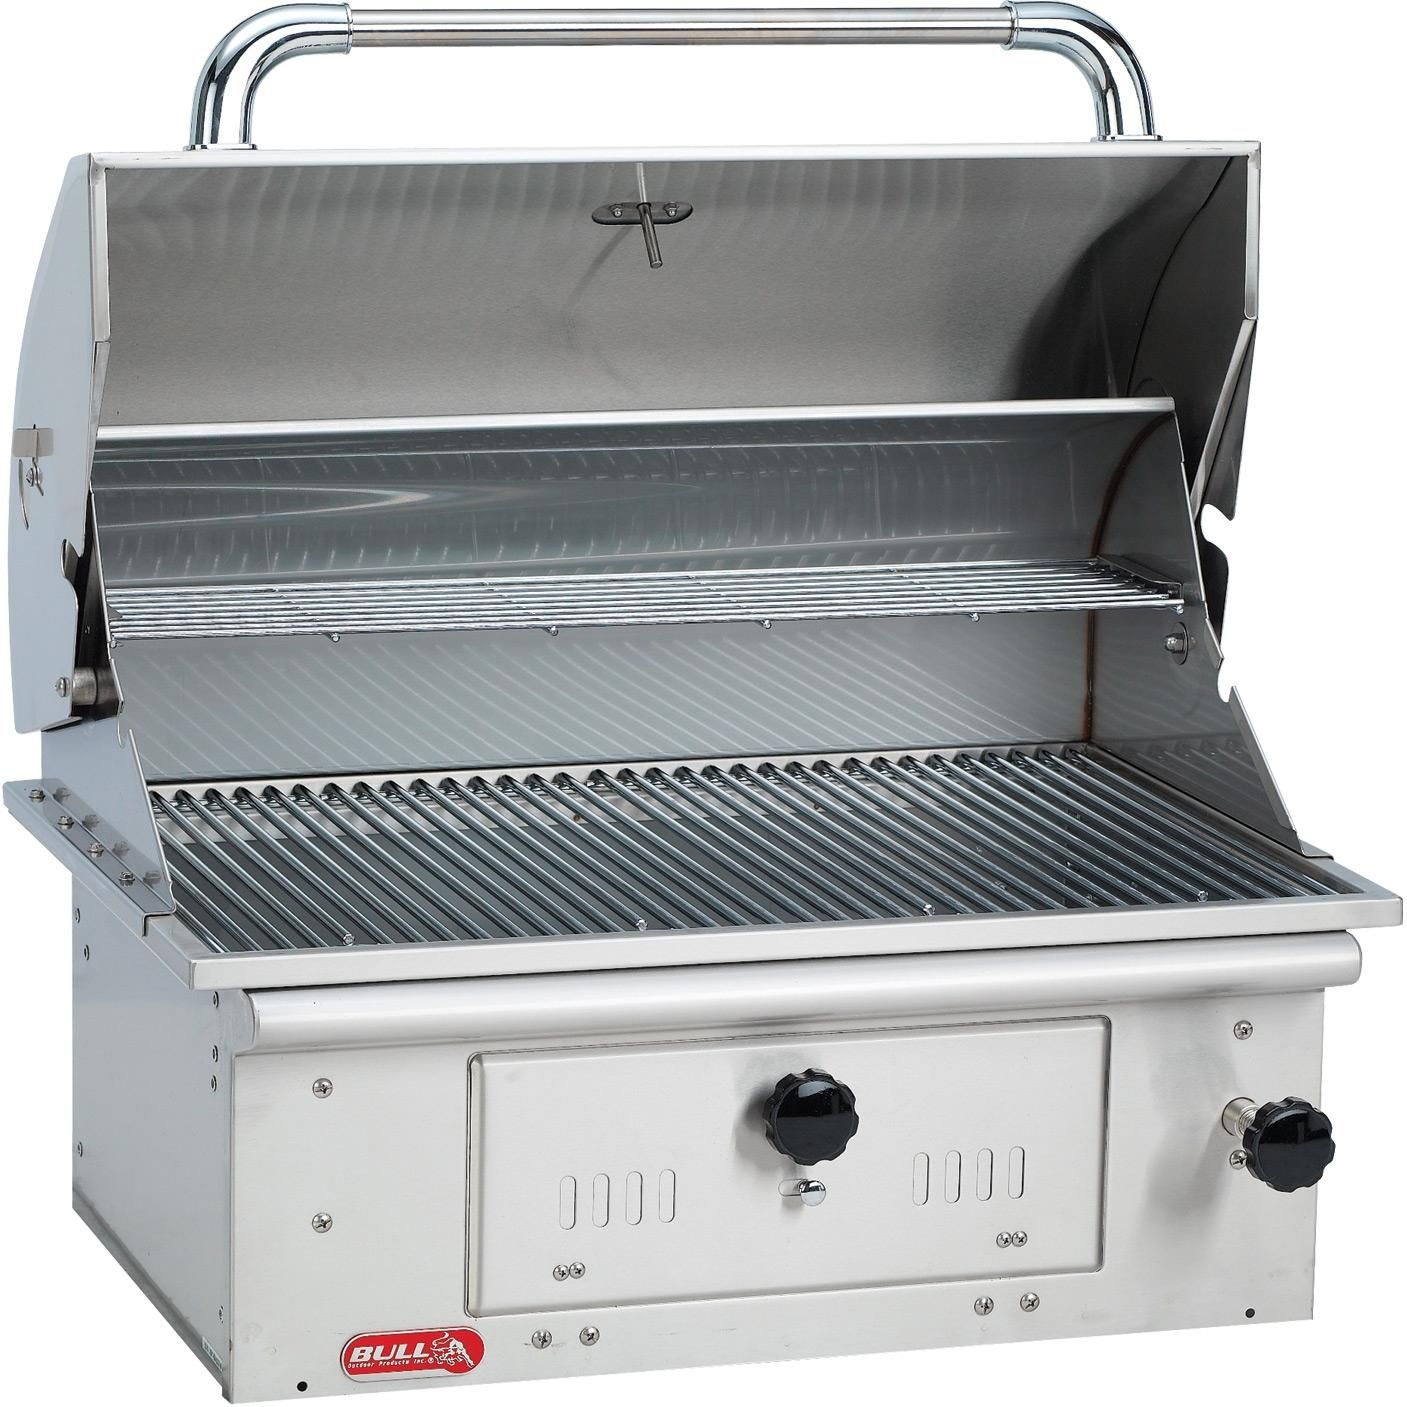 Bull Bison 30 Inch Built In Stainless Steel Charcoal Grill 67529 Bbqguys Built In Charcoal Grill Built In Grill Outdoor Kitchen Design